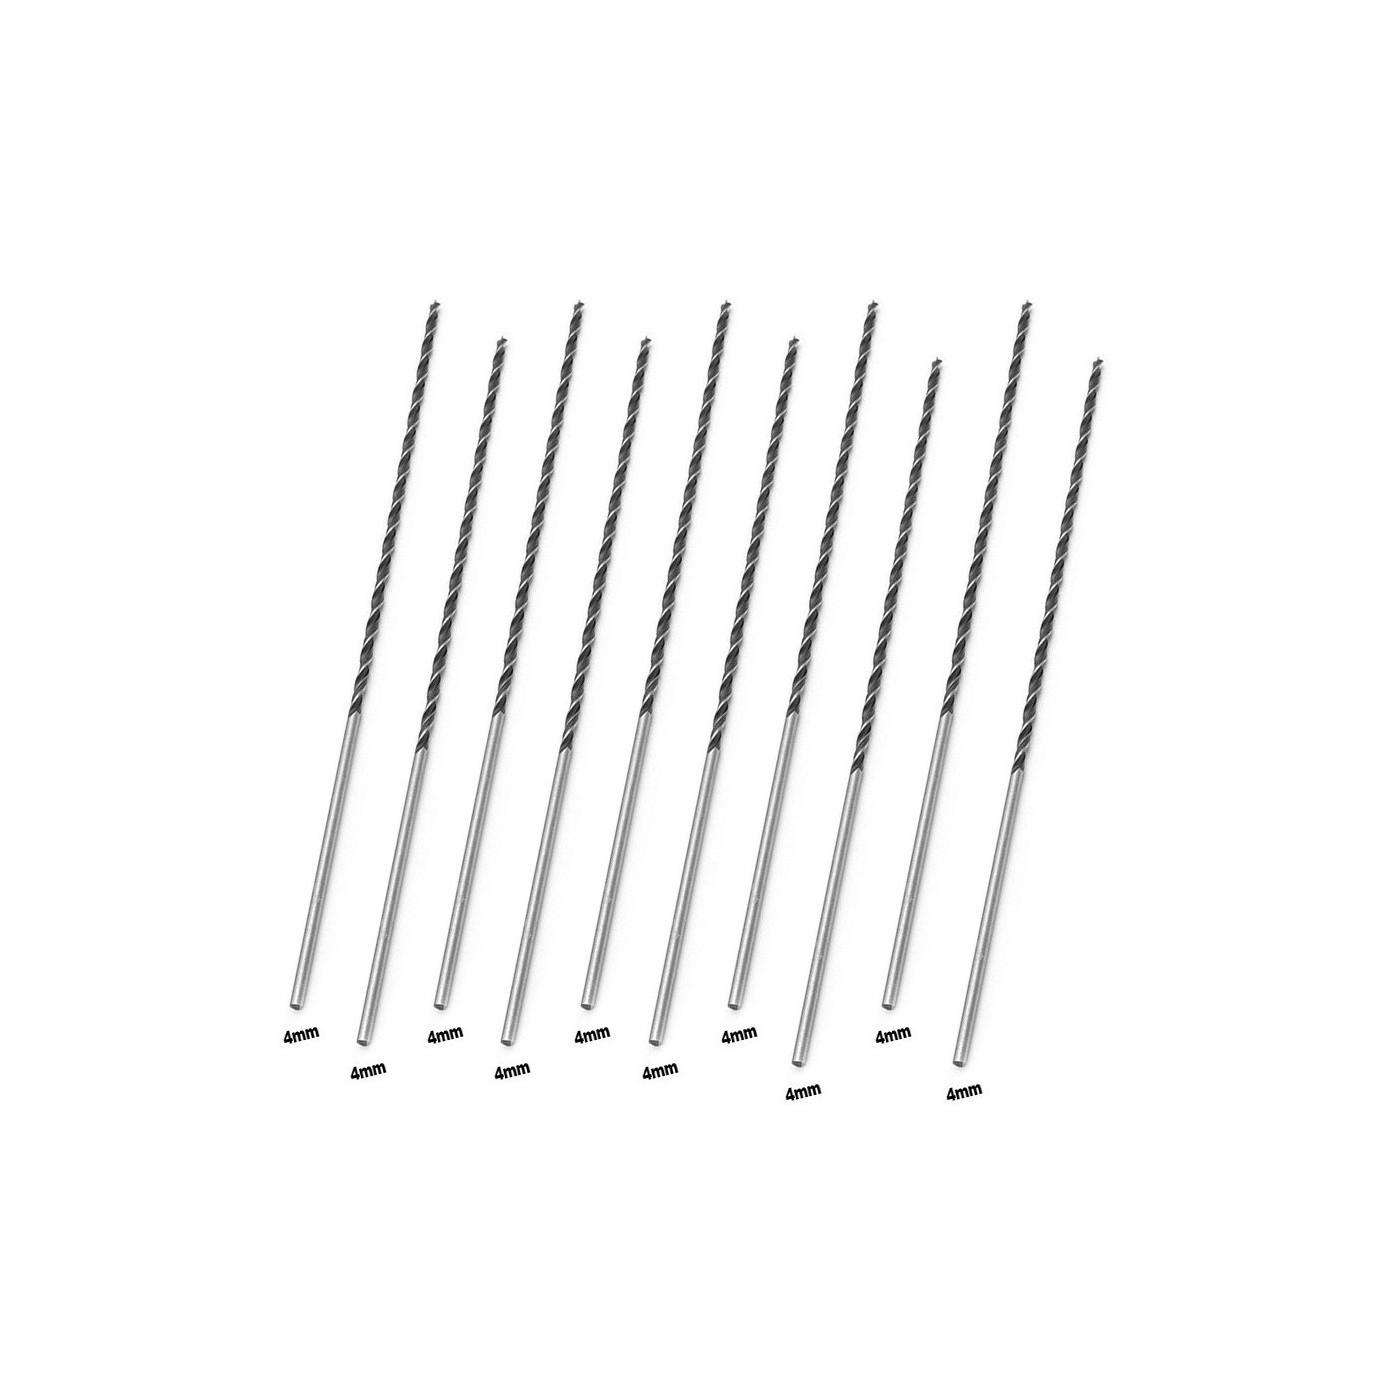 Set of 10 extra long wood drill bits (4x300 mm)  - 1